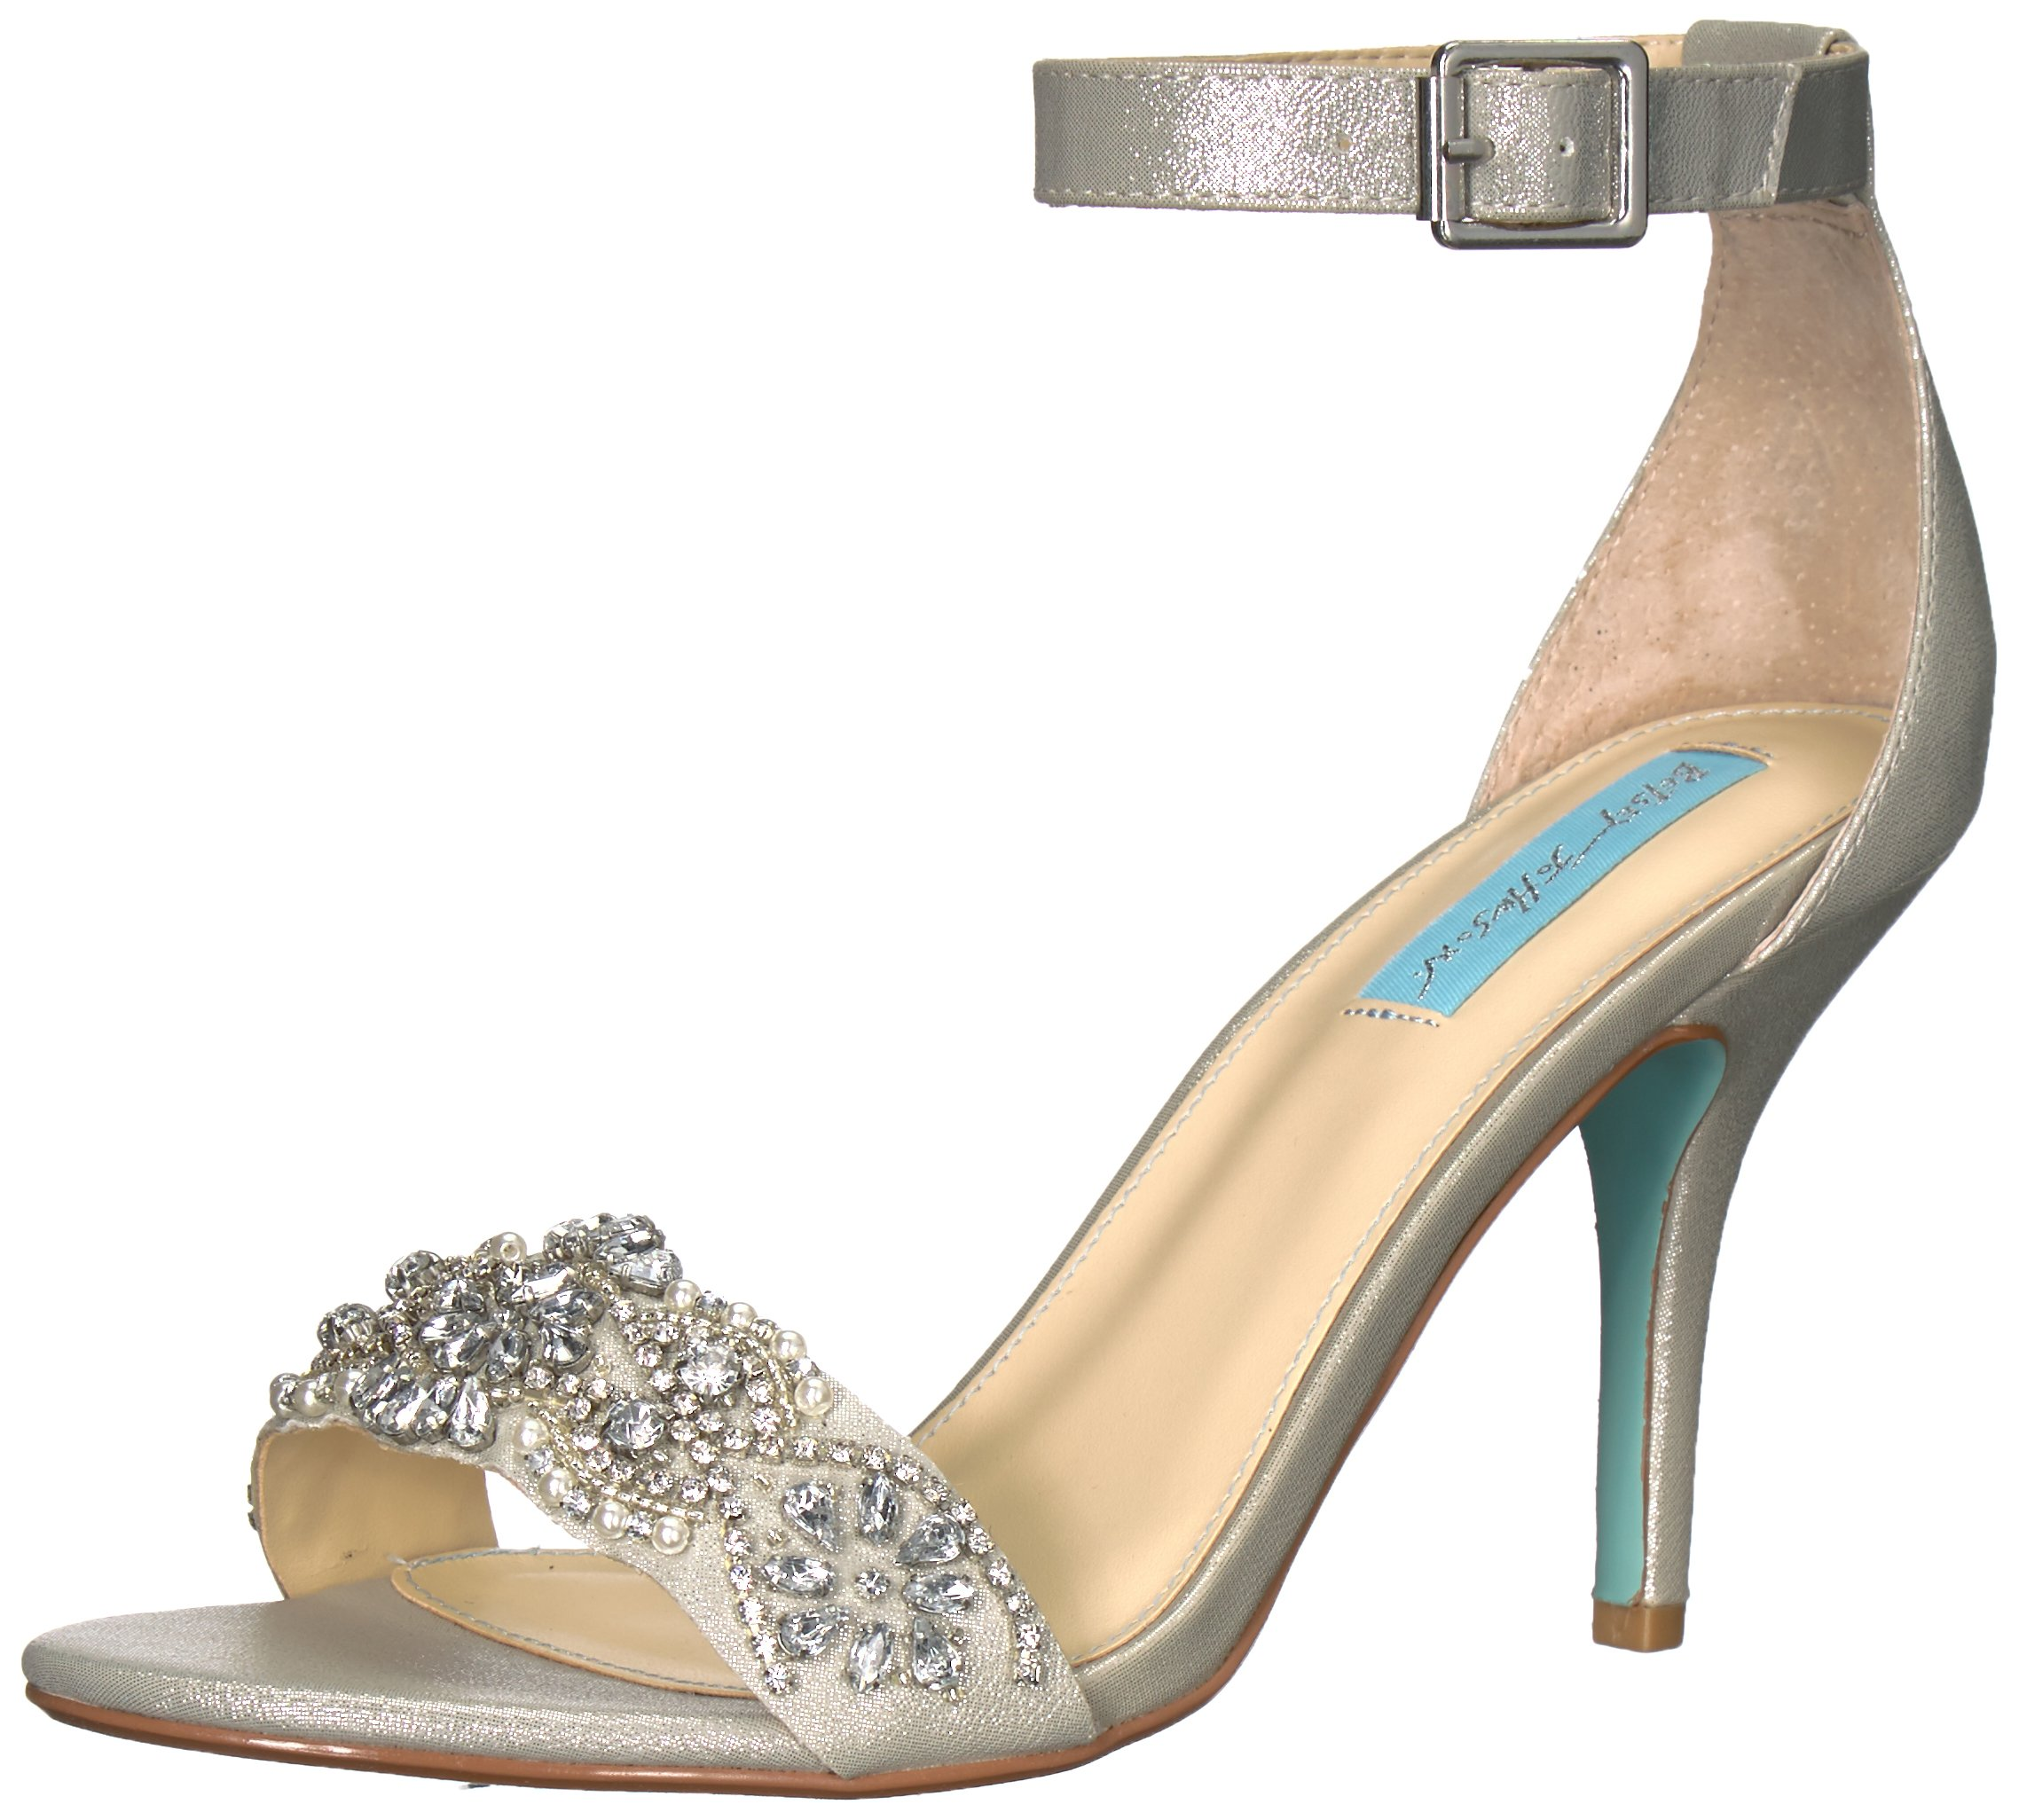 Blue by Betsey Johnson Women's SB-Gina Heeled Sandal, Silver, 11 W US